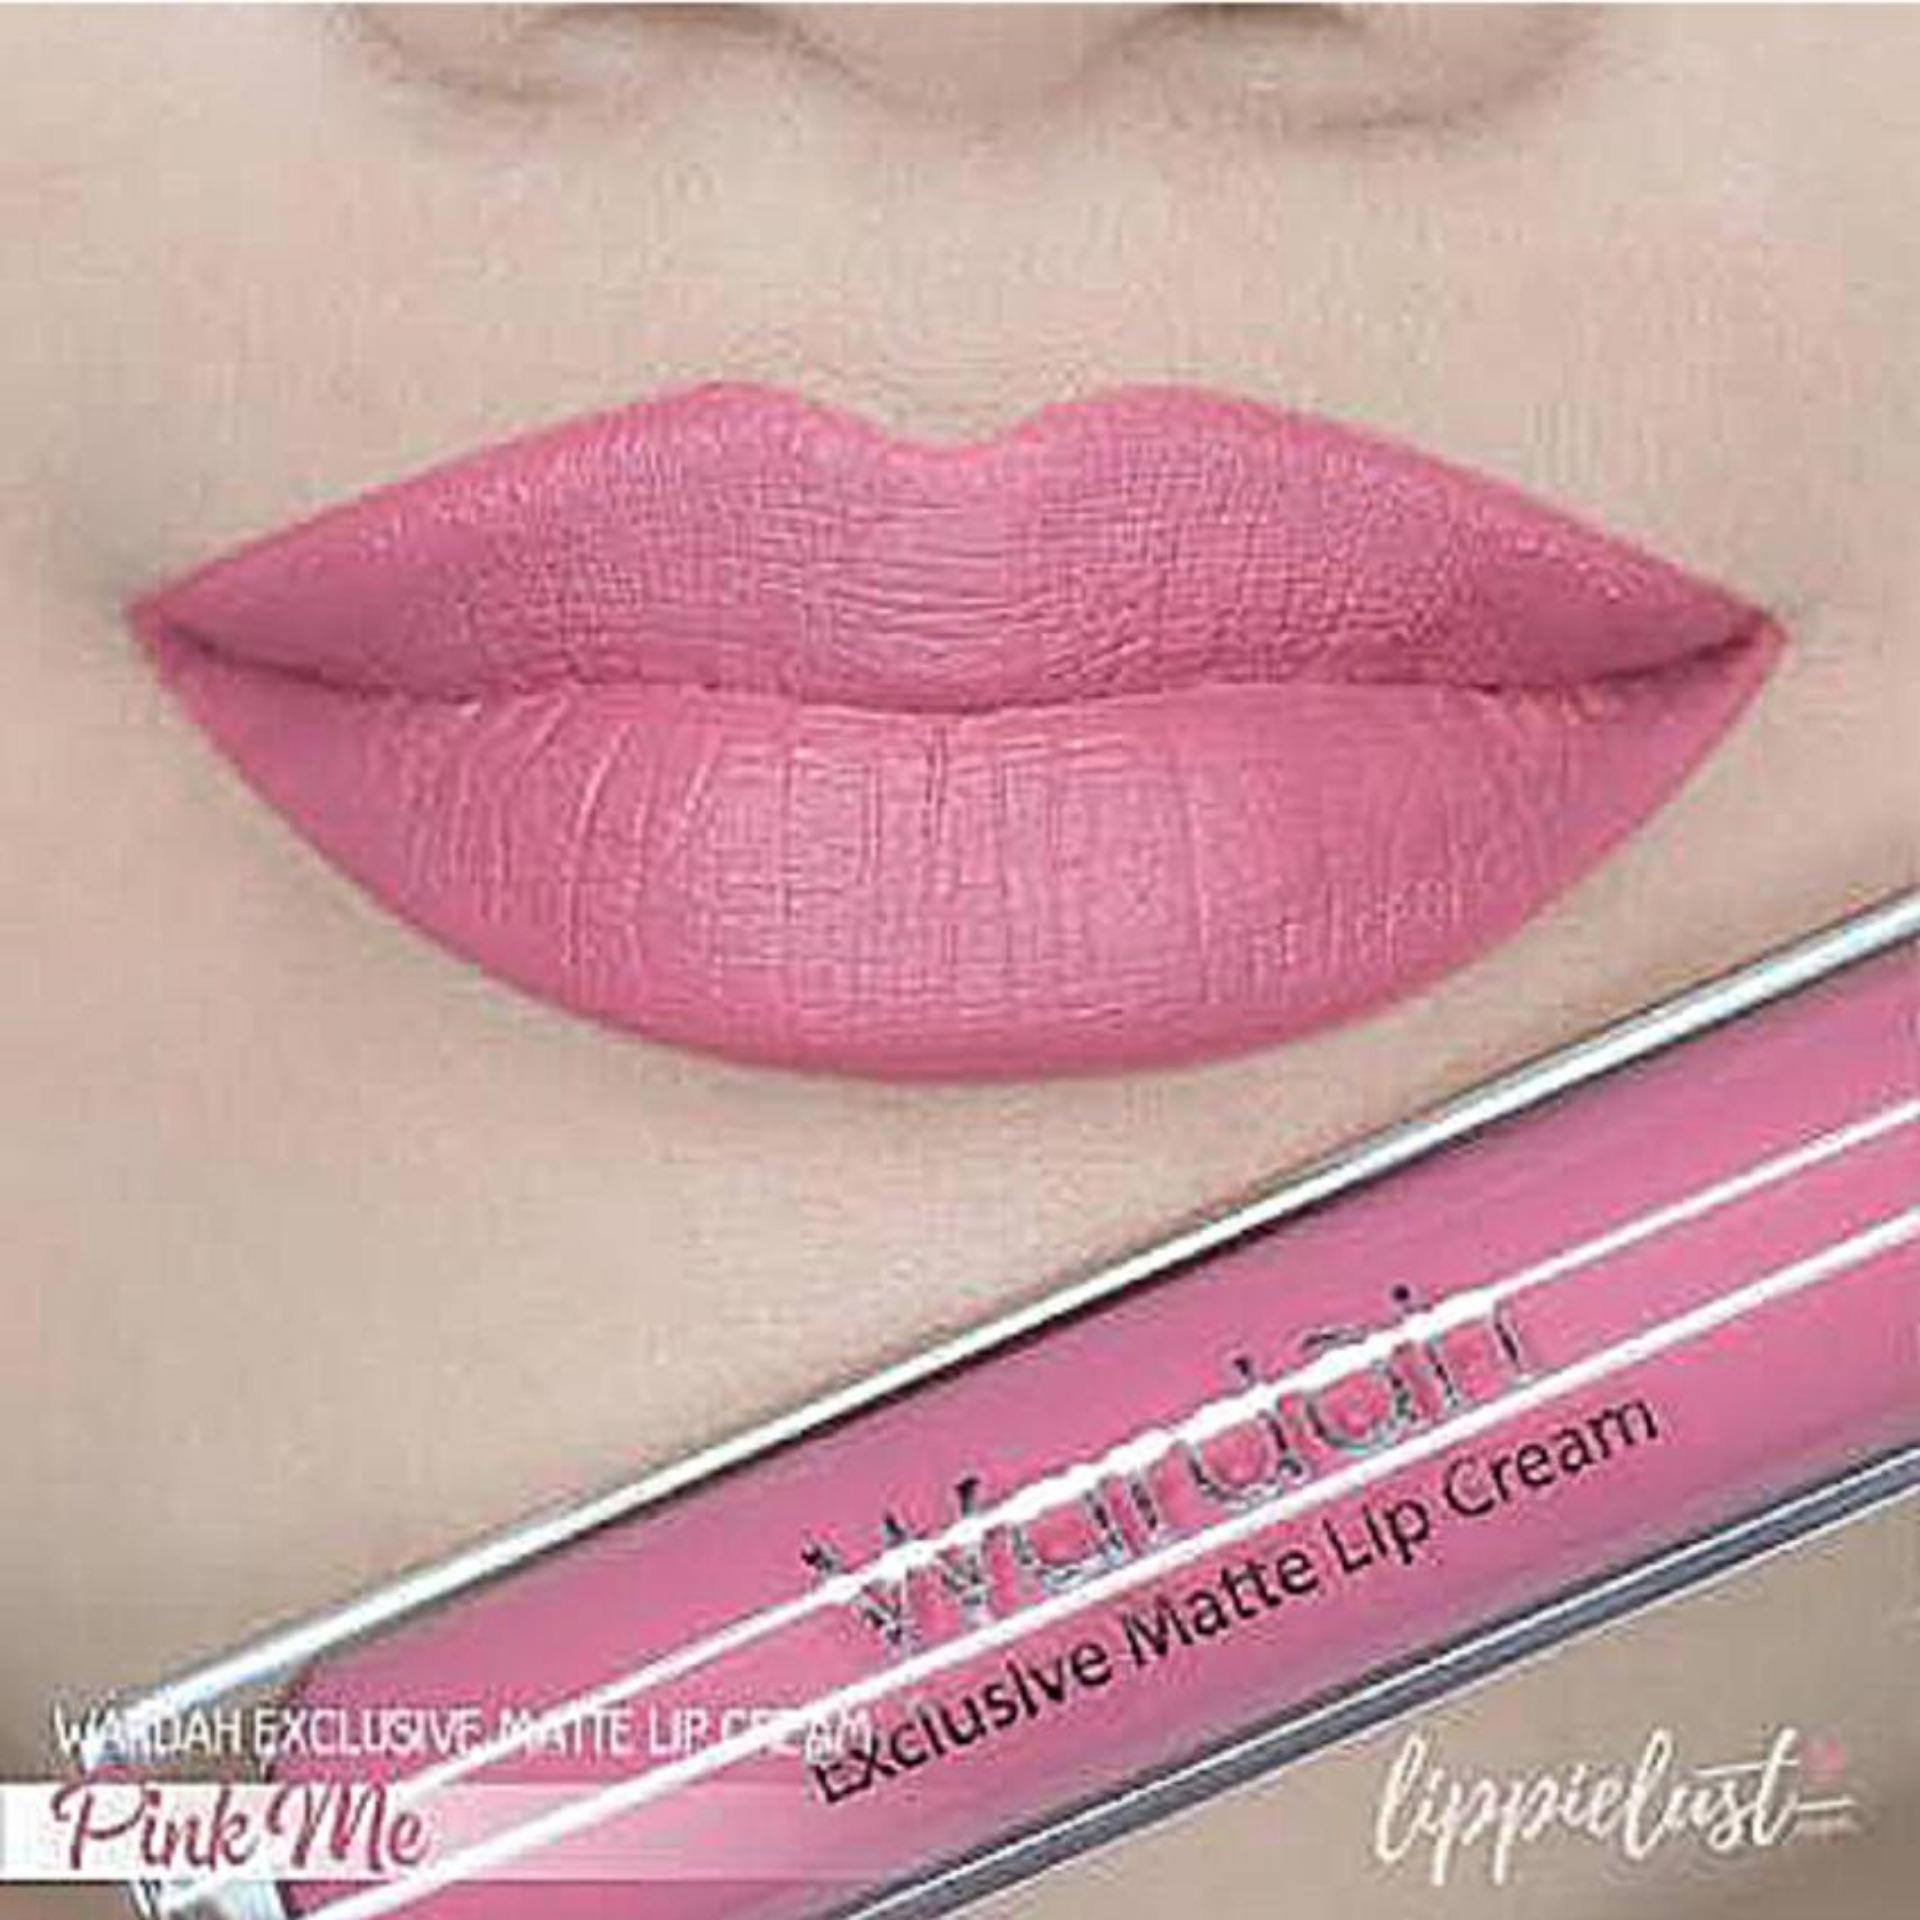 Warna unik Wardah Exclusive Matte Lip Cream (04 Pink Me) - Lip Cream Matte